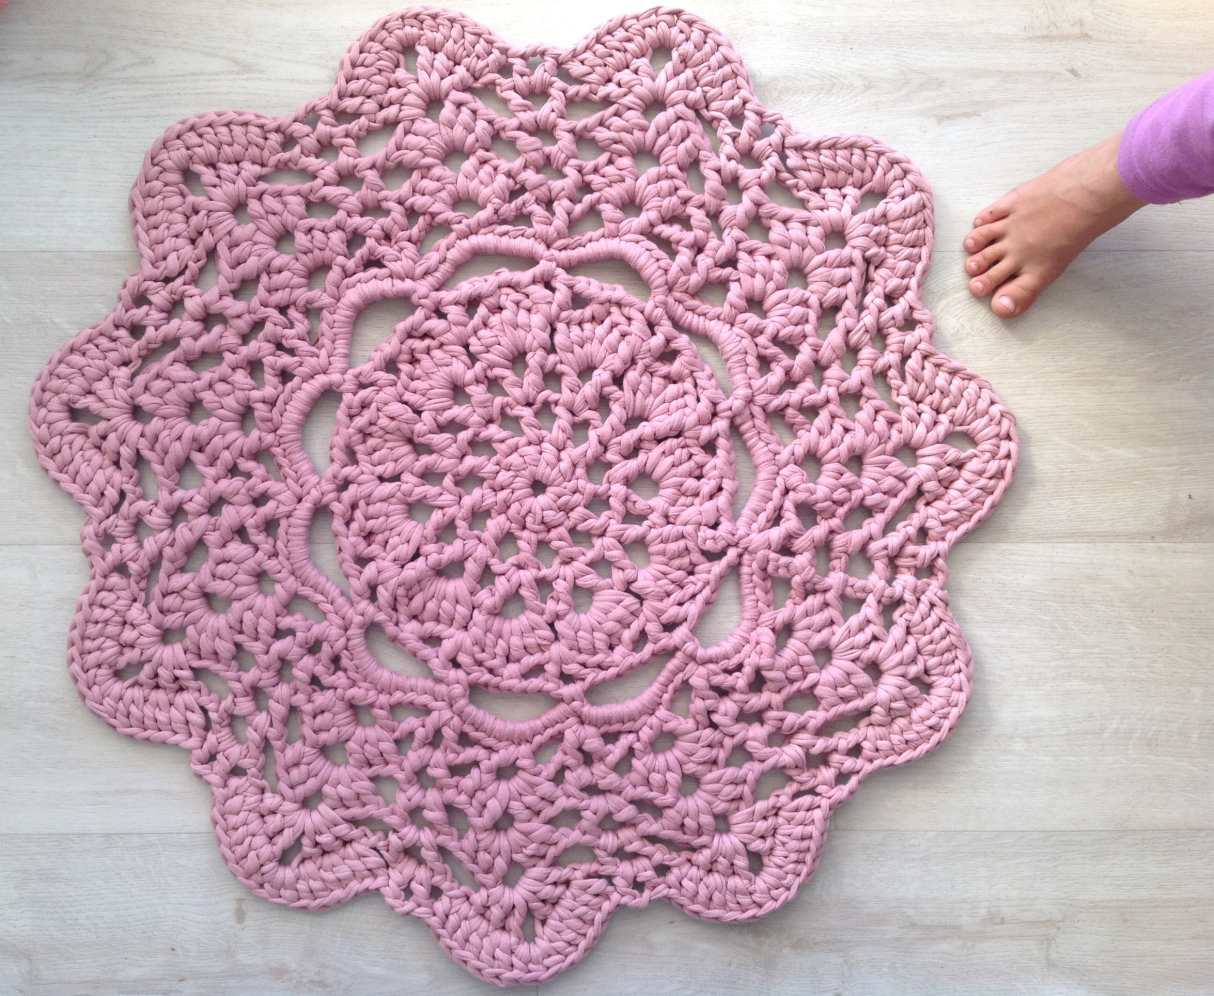 10 Free Thread And Lace Crochet Doily Patterns Diagram Patrones 2 Pin T Shirt Yarn Rug Pattern